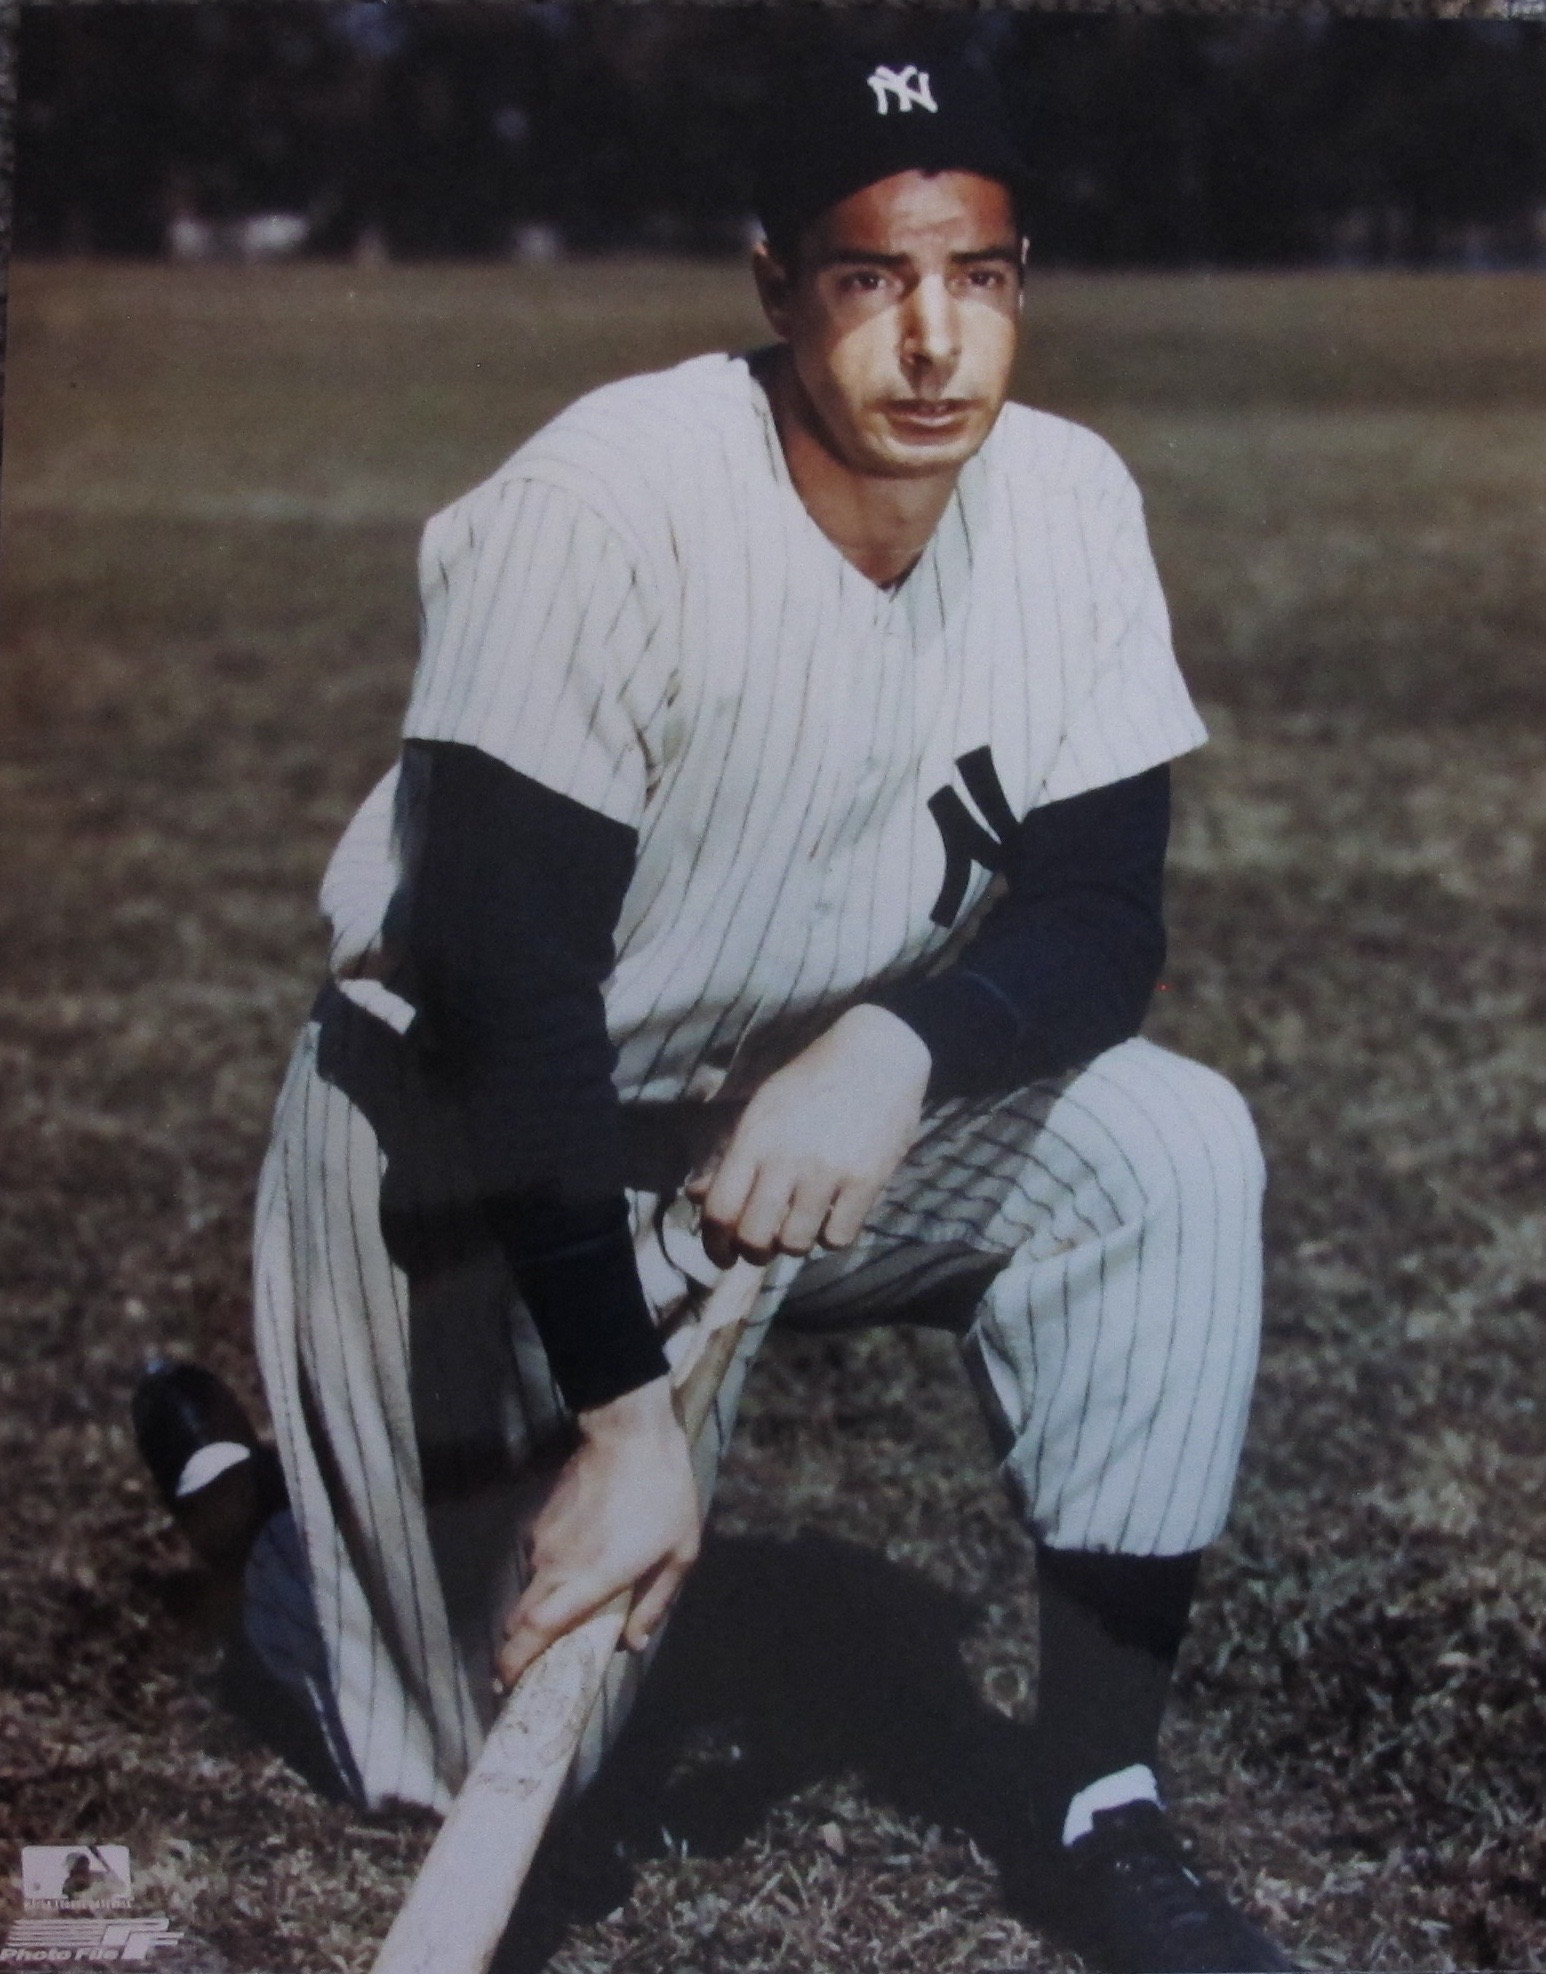 Joe Dimaggio Photo